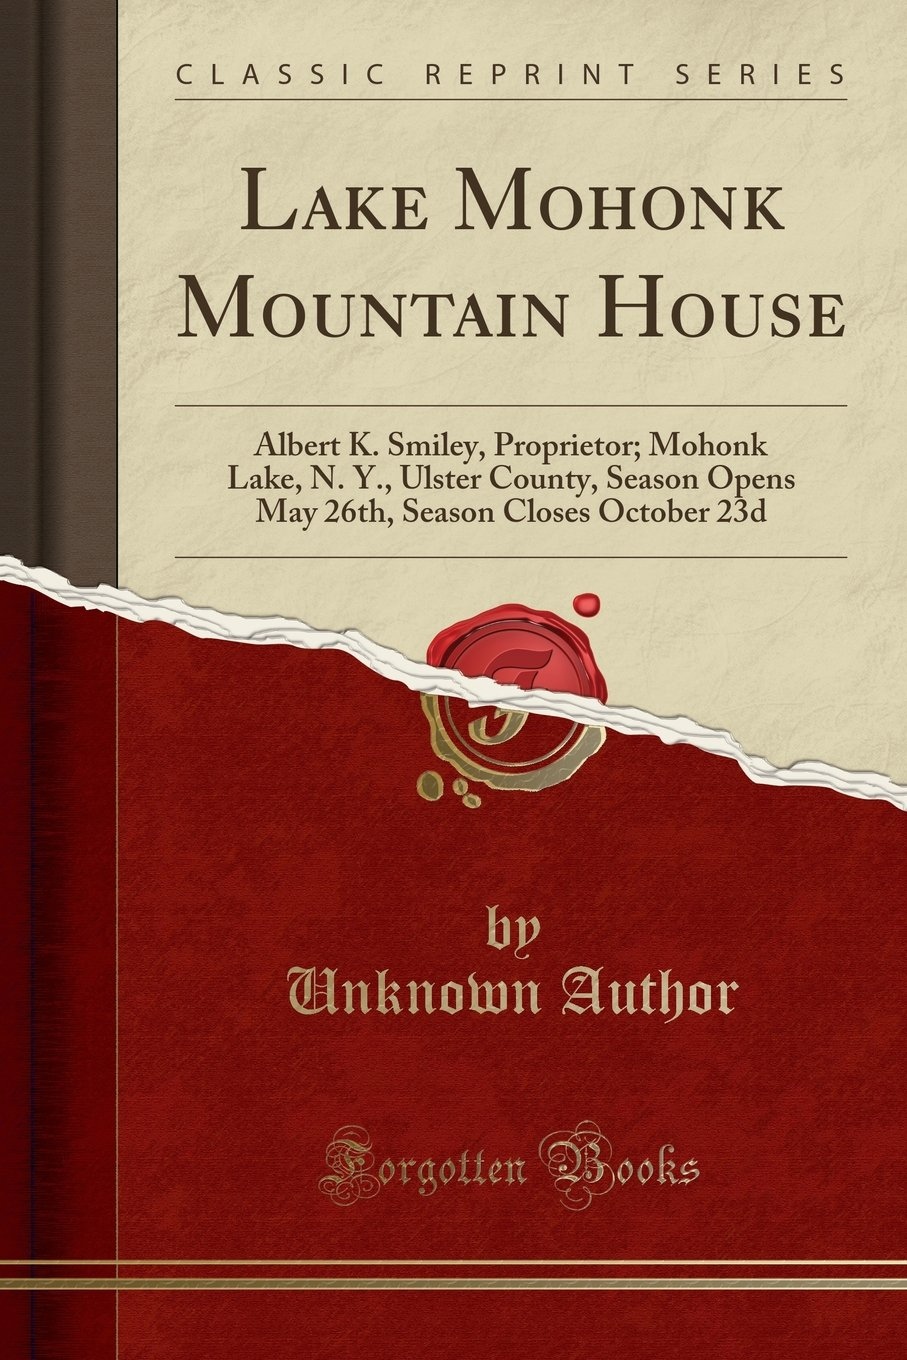 Lake Mohonk Mountain House: Albert K. Smiley, Proprietor; Mohonk Lake, N. Y., Ulster County, Season Opens May 26th, Season Closes October 23d (Classic Reprint) pdf epub